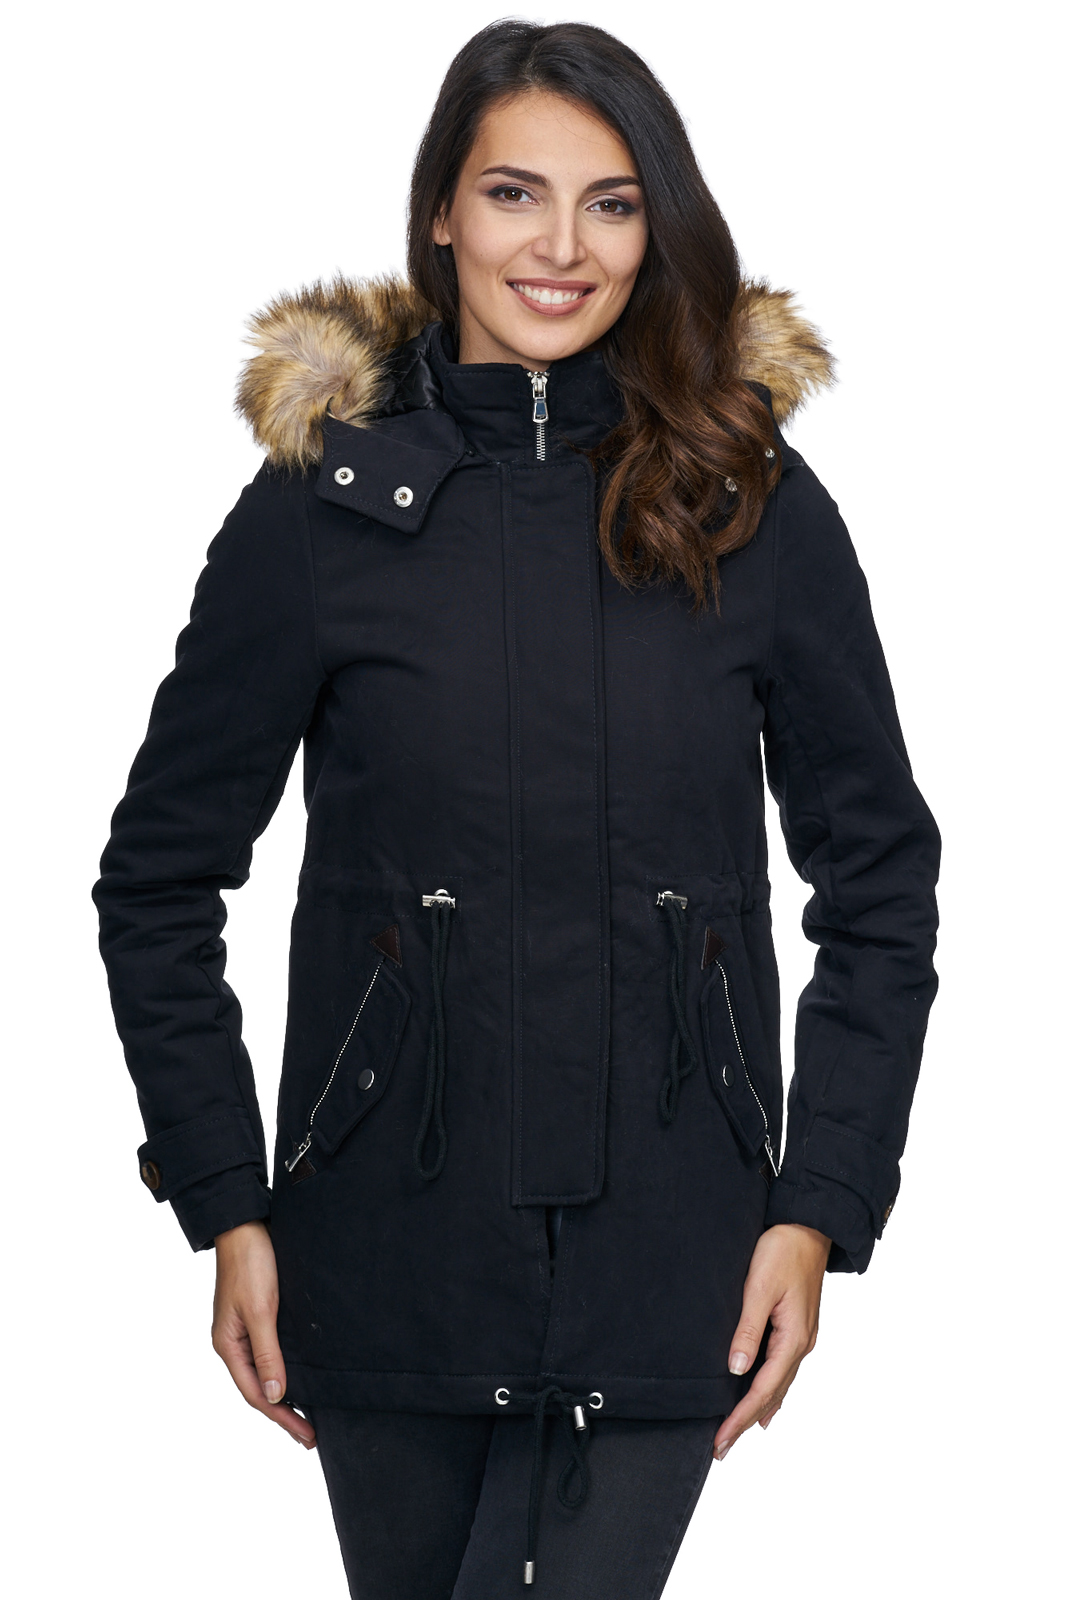 damen winter parka jacke mantel warm winterjacke fell. Black Bedroom Furniture Sets. Home Design Ideas